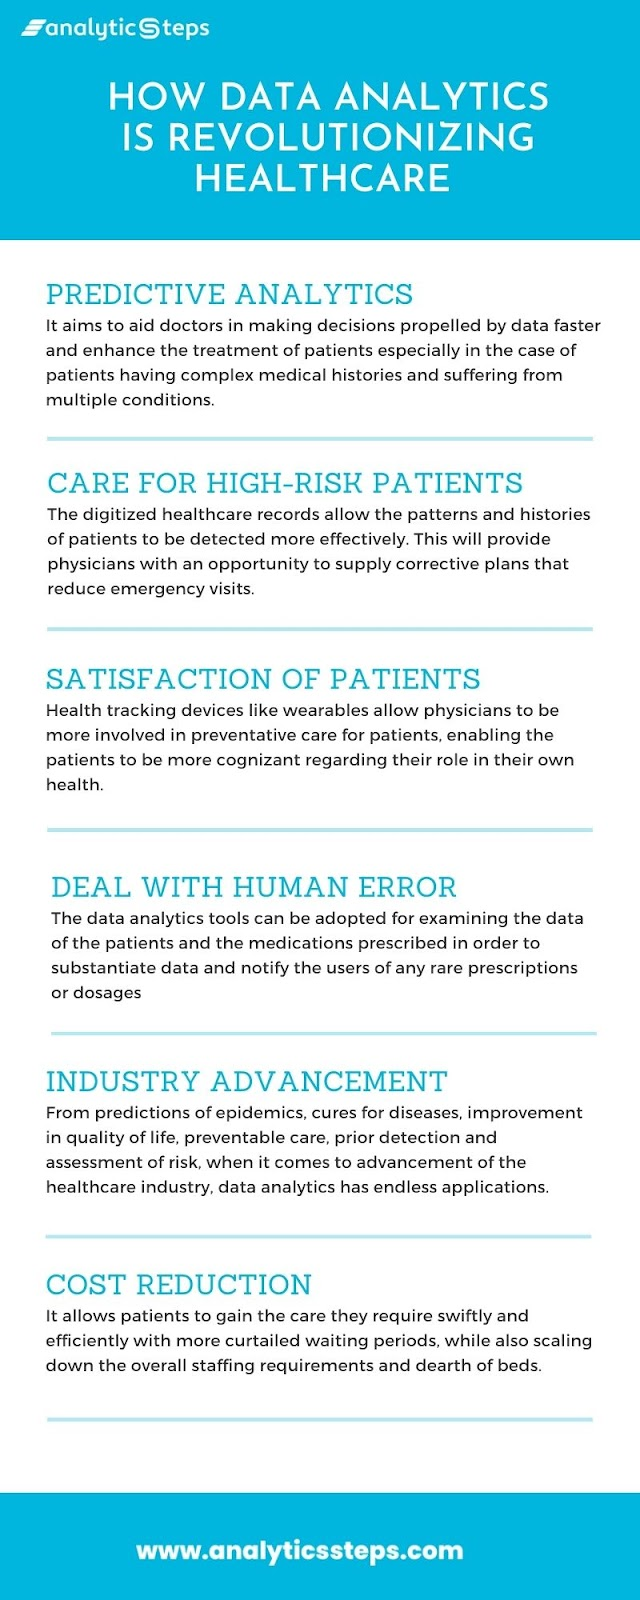 From predictive analysis, caring for high-risk patients, working on satisfaction of patients. dealing with human error, industry advancement, and facilitating cost reduction, there are many ways in which data analytics is revolutionizing healthcare.